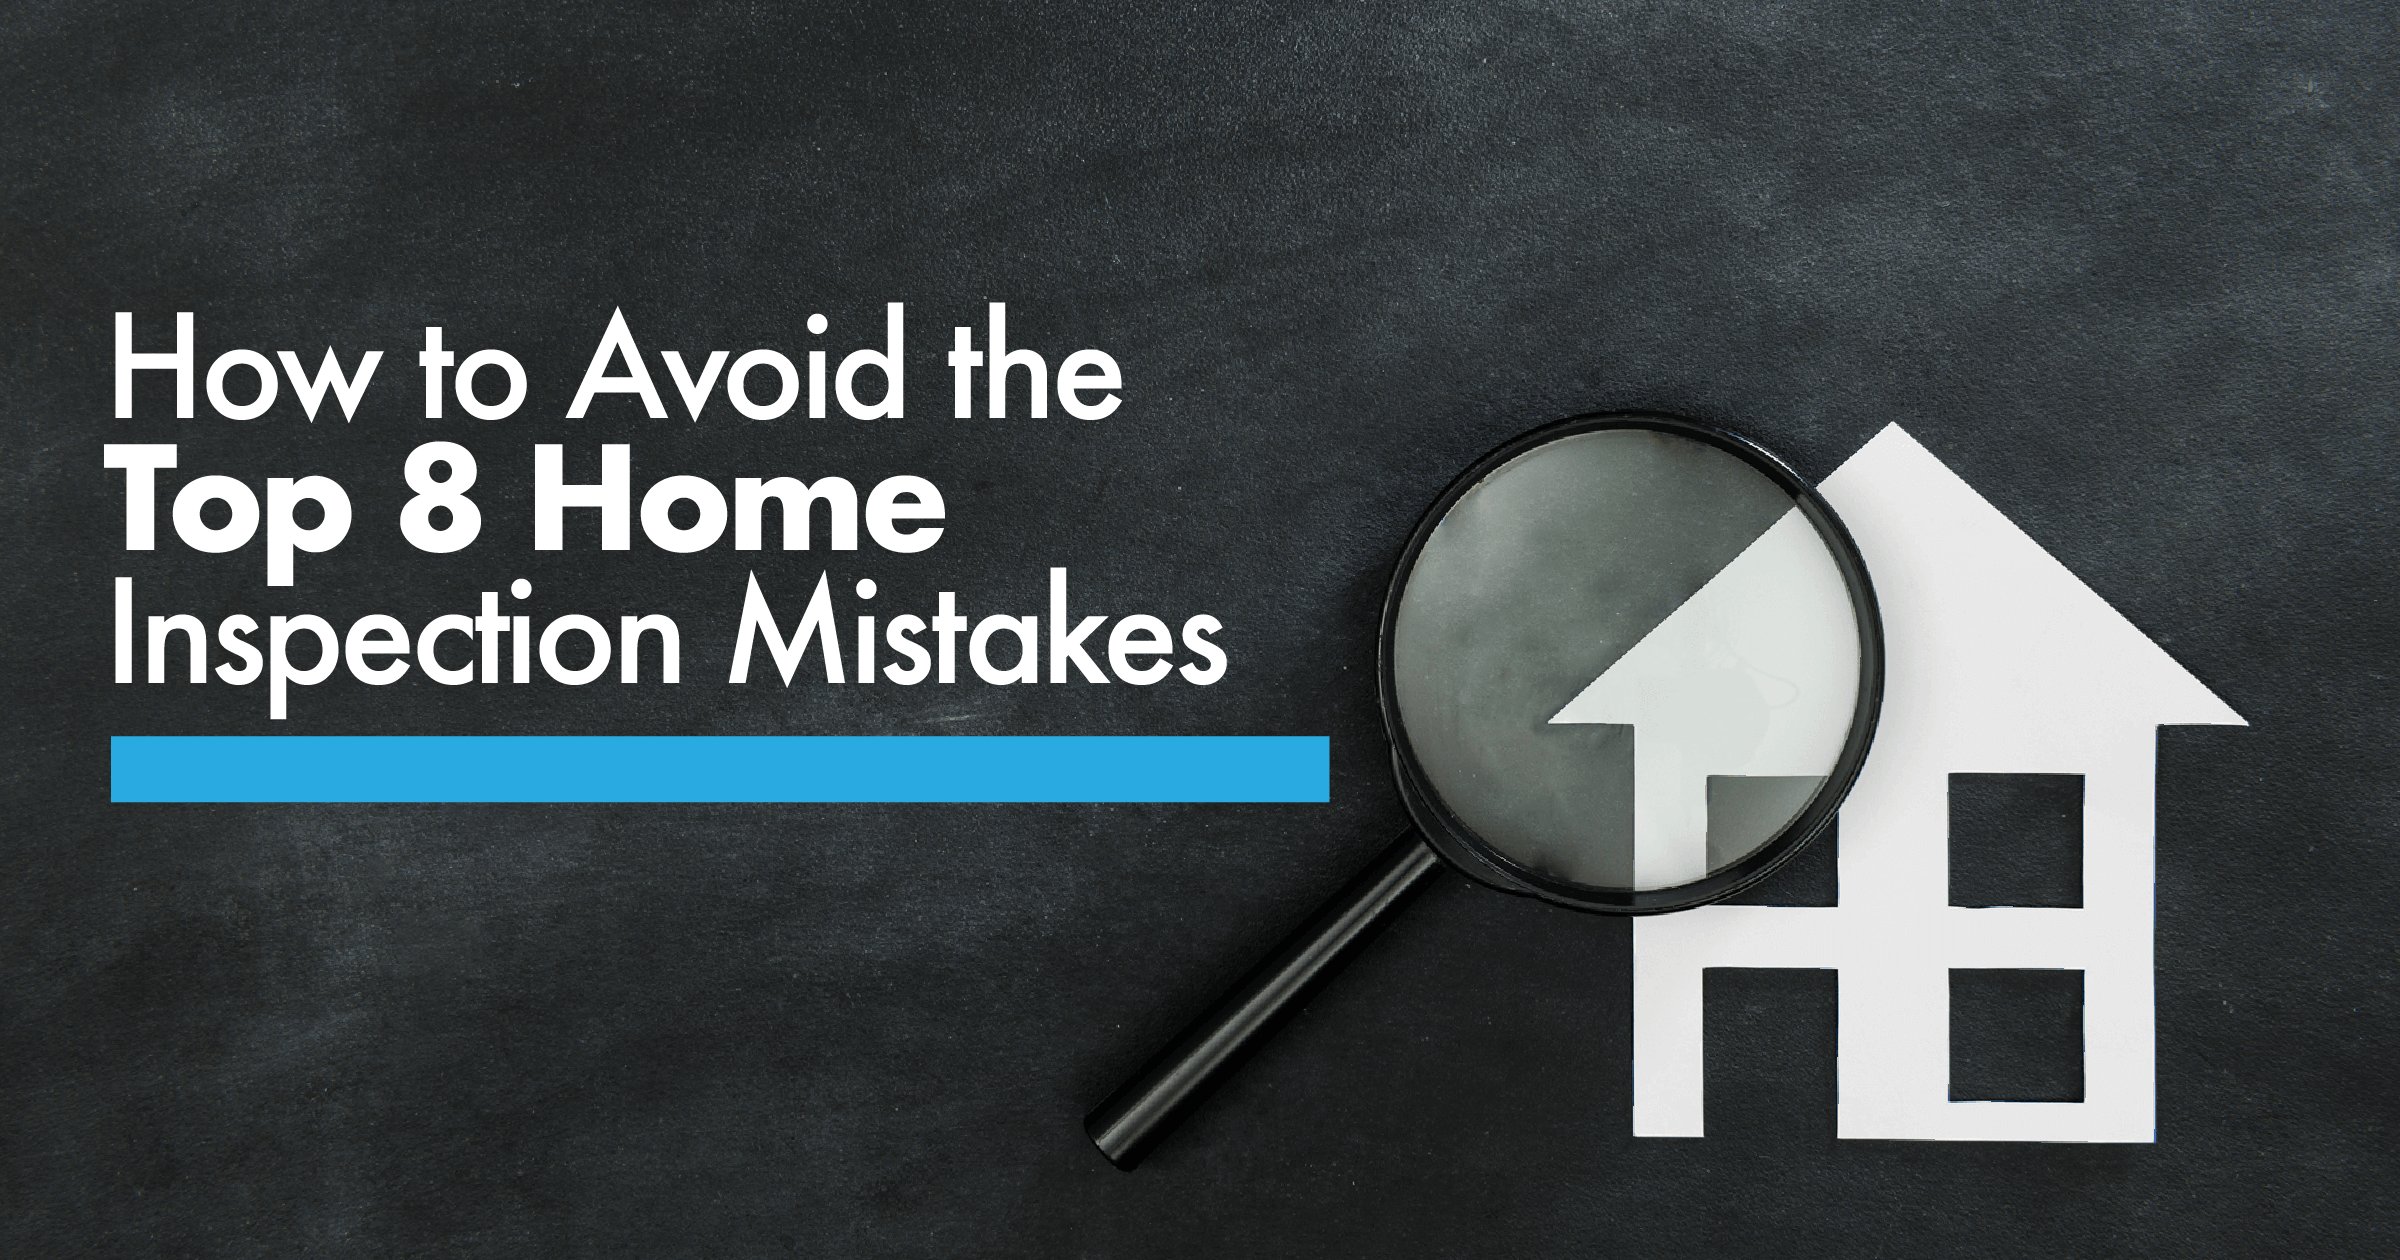 Top 8 Home Inspection Mistakes to Avoid